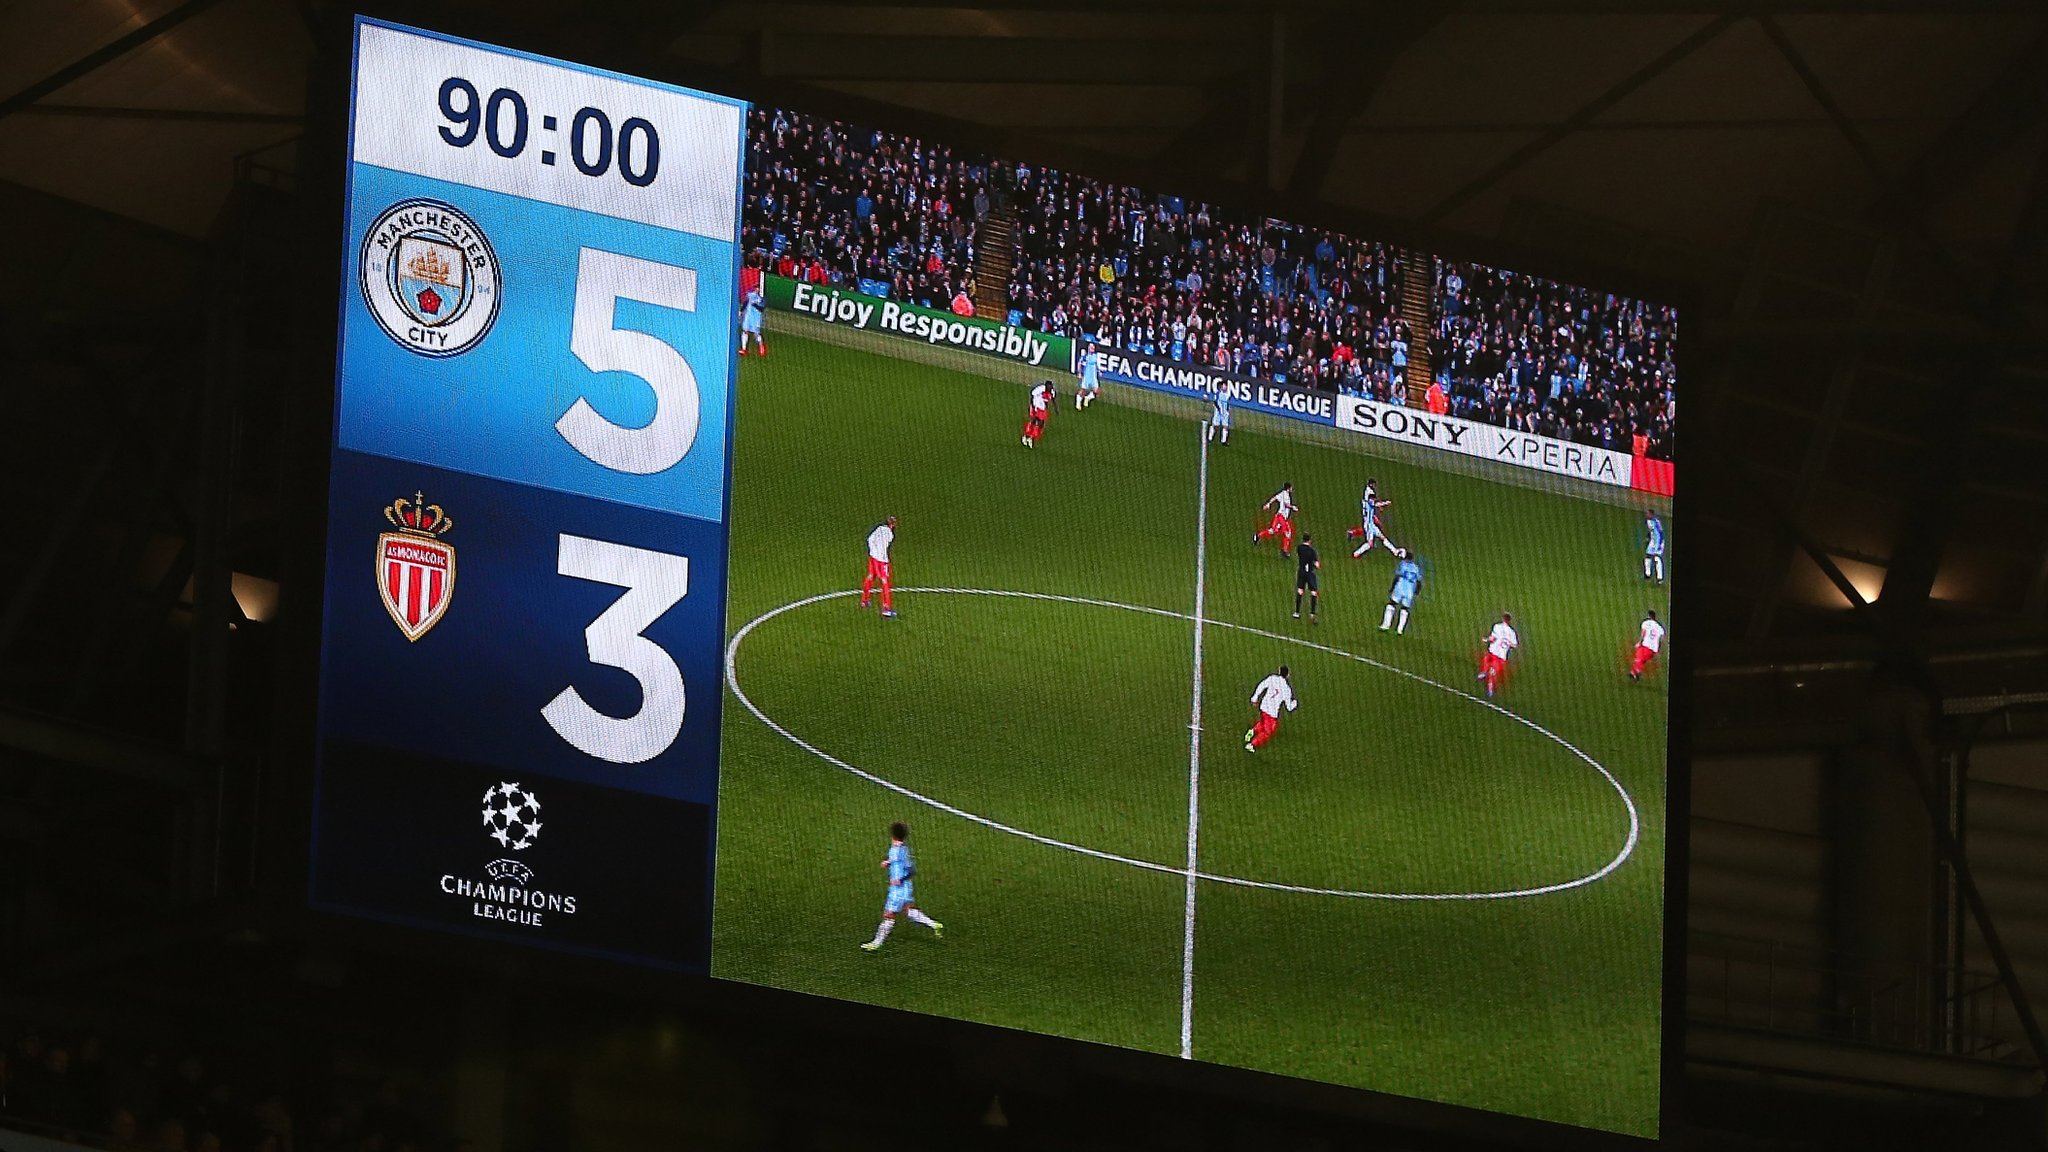 Man City fined £15,573 for incidents relating to Champions League tie